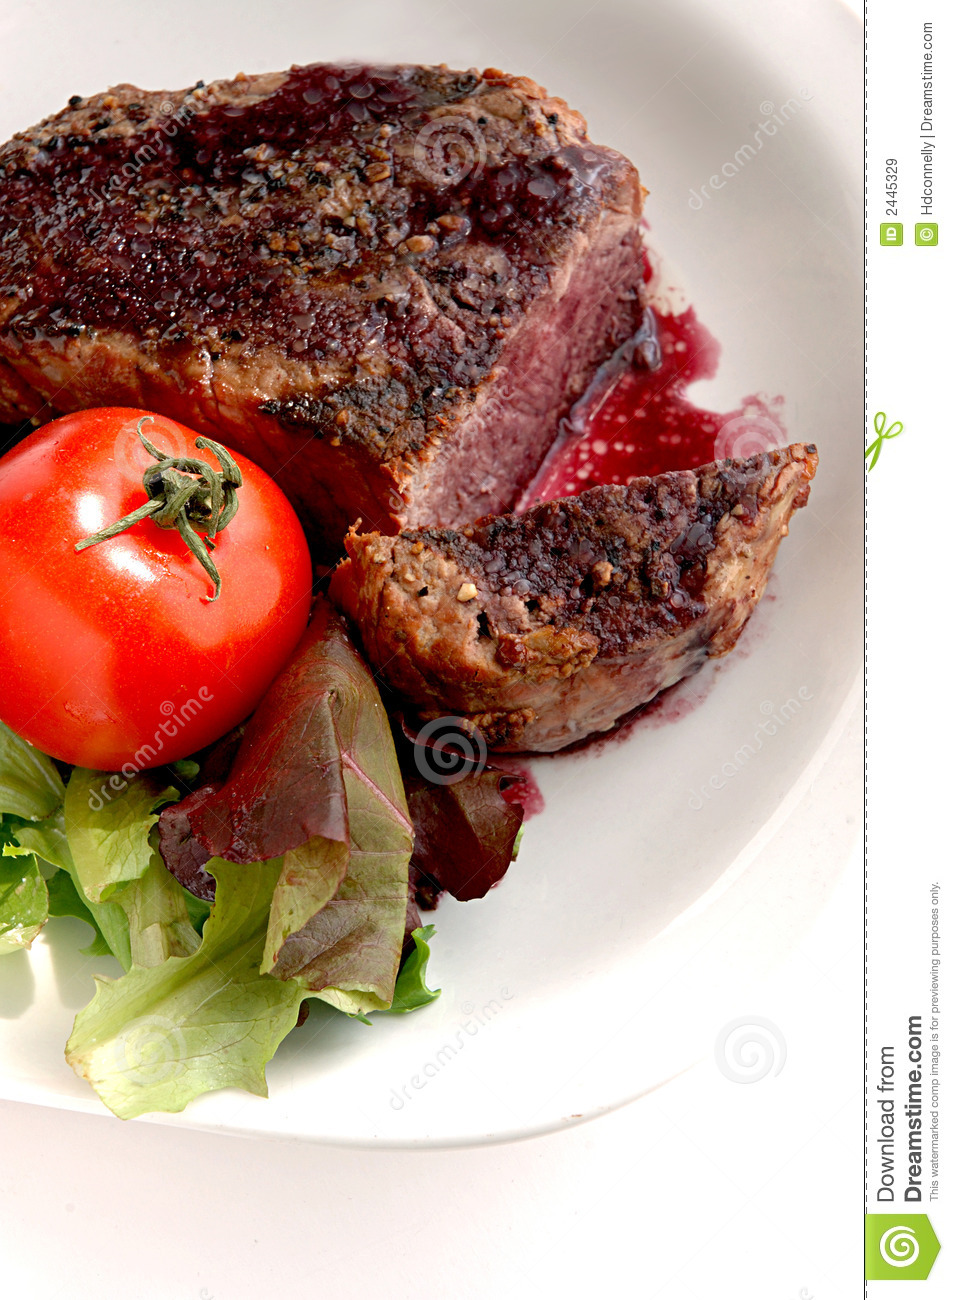 Filet Mignon Royalty Free Stock Images - Image: 2445329